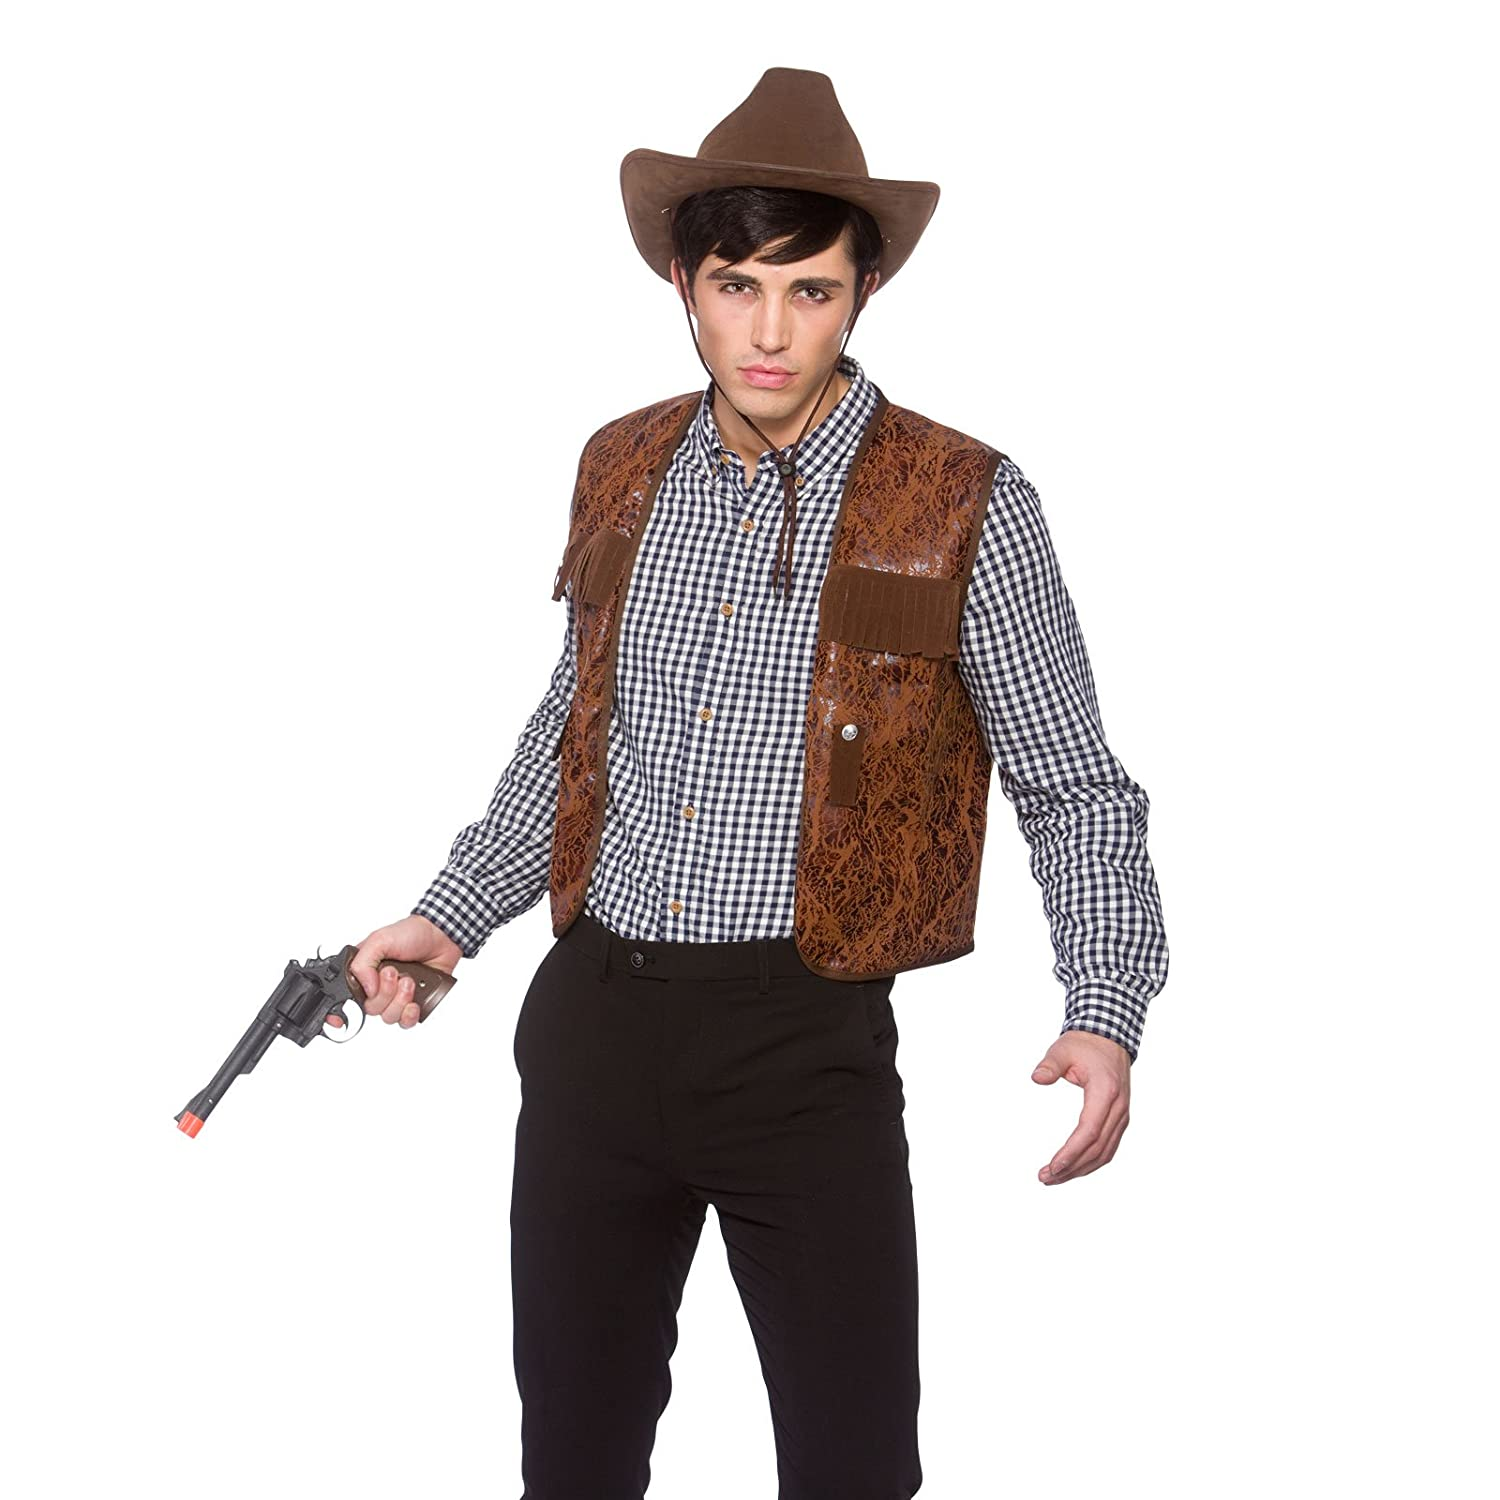 Adults Cowboy Western Wild West Fancy Dress Up Paty Costume Outfit - One Size Amazon.co.uk Clothing  sc 1 st  Amazon UK & Adults Cowboy Western Wild West Fancy Dress Up Paty Costume Outfit ...